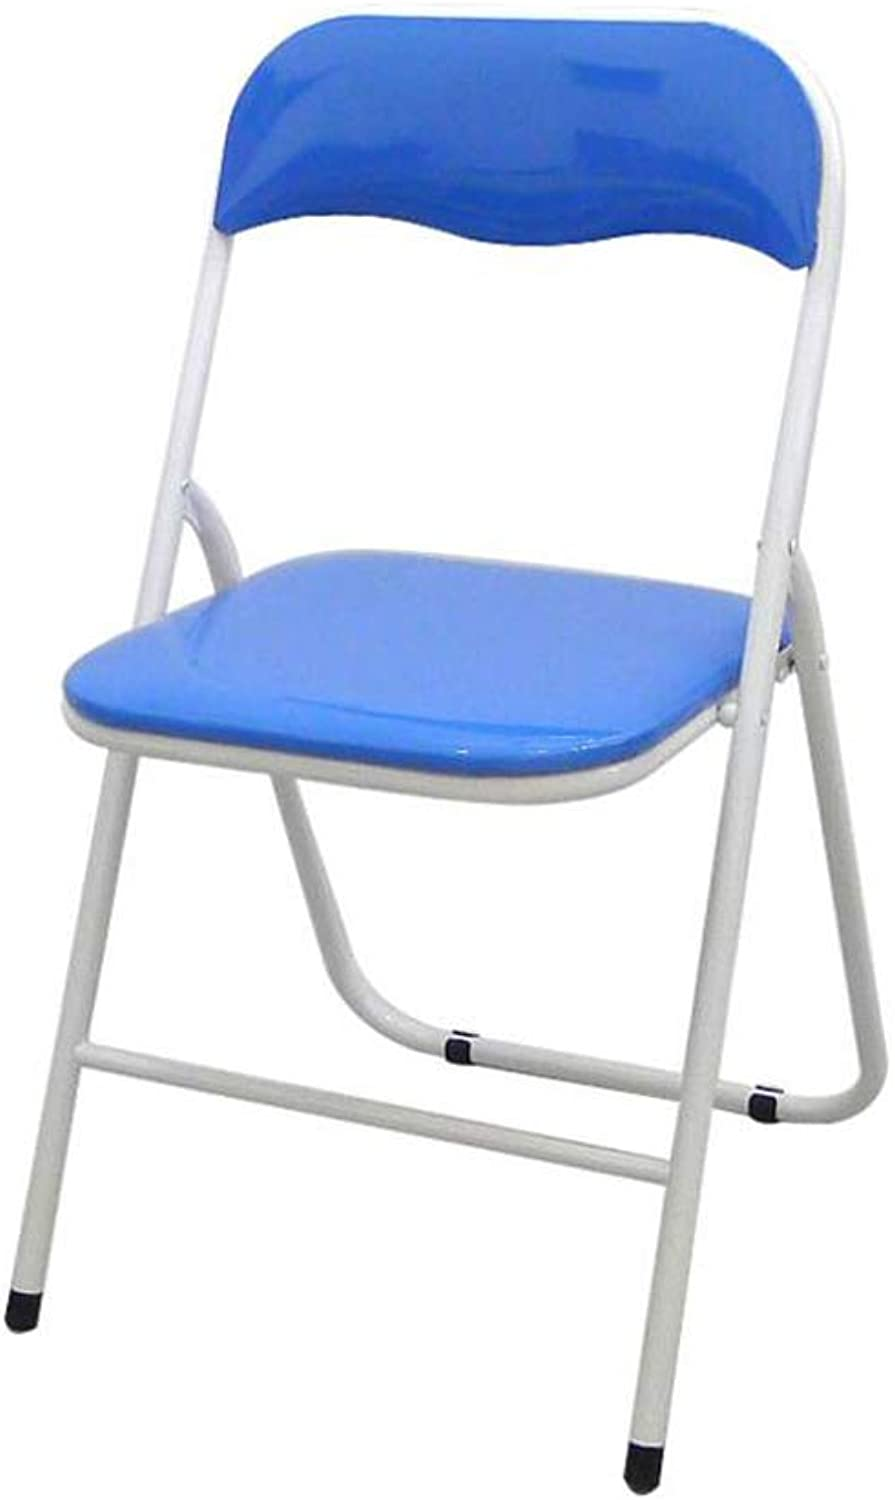 FENGFAN Chair Folding Steel Frame Padded High 4 color Bar Stools Seat Home Office Breakfast Kitchen (color   bluee)